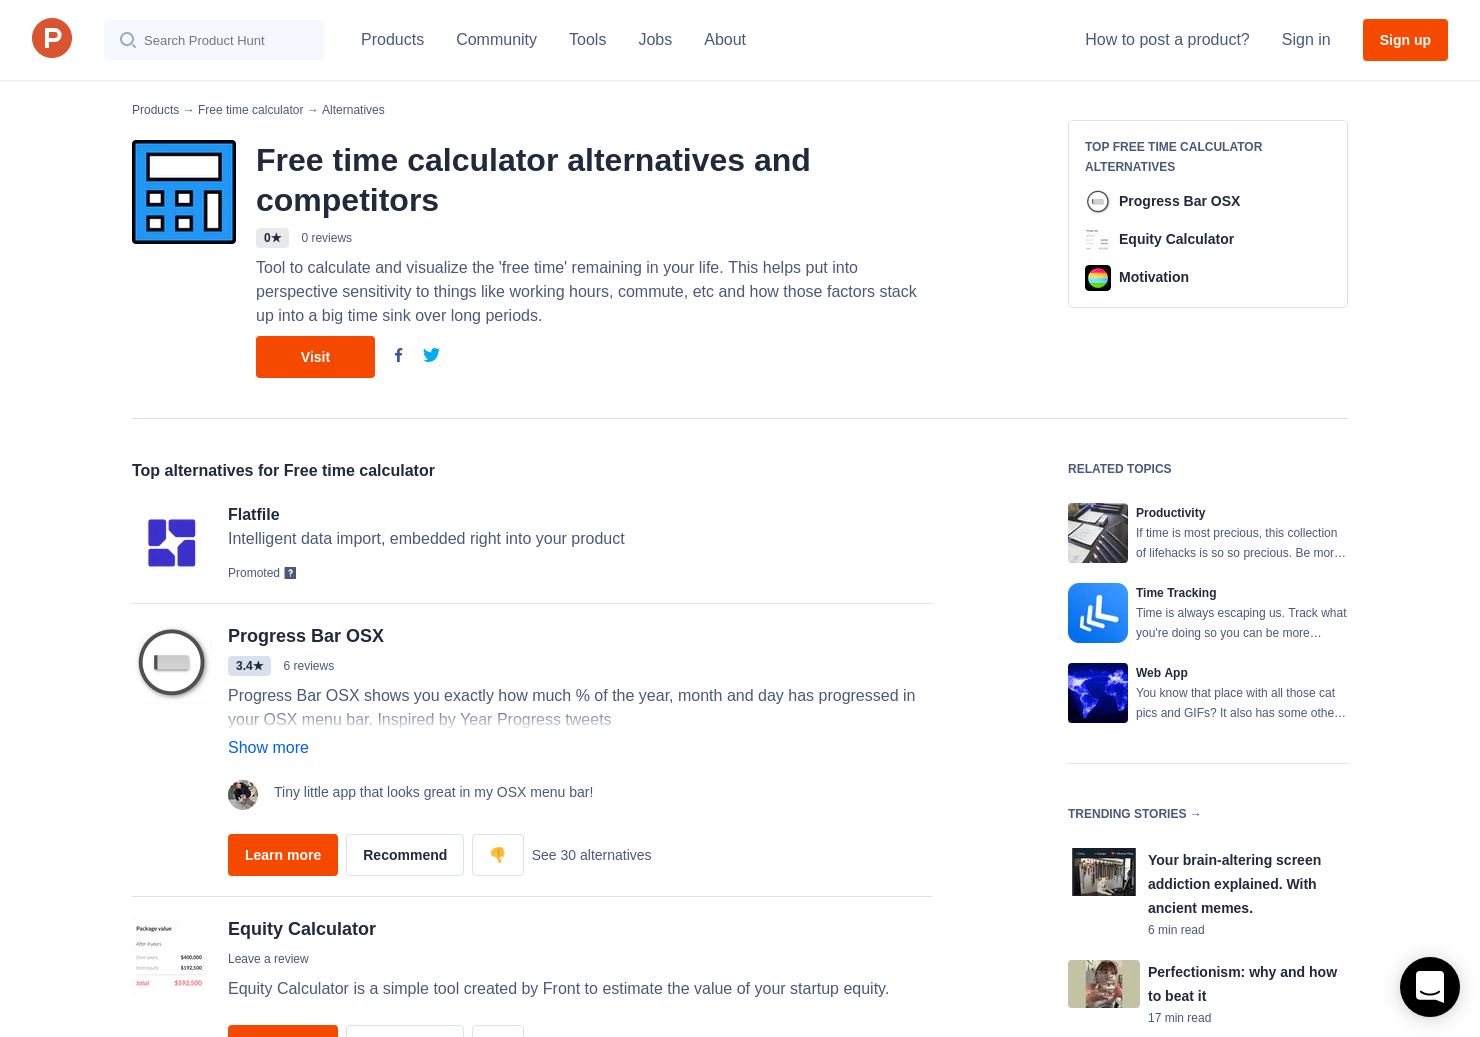 10 alternatives to free time calculator product hunt